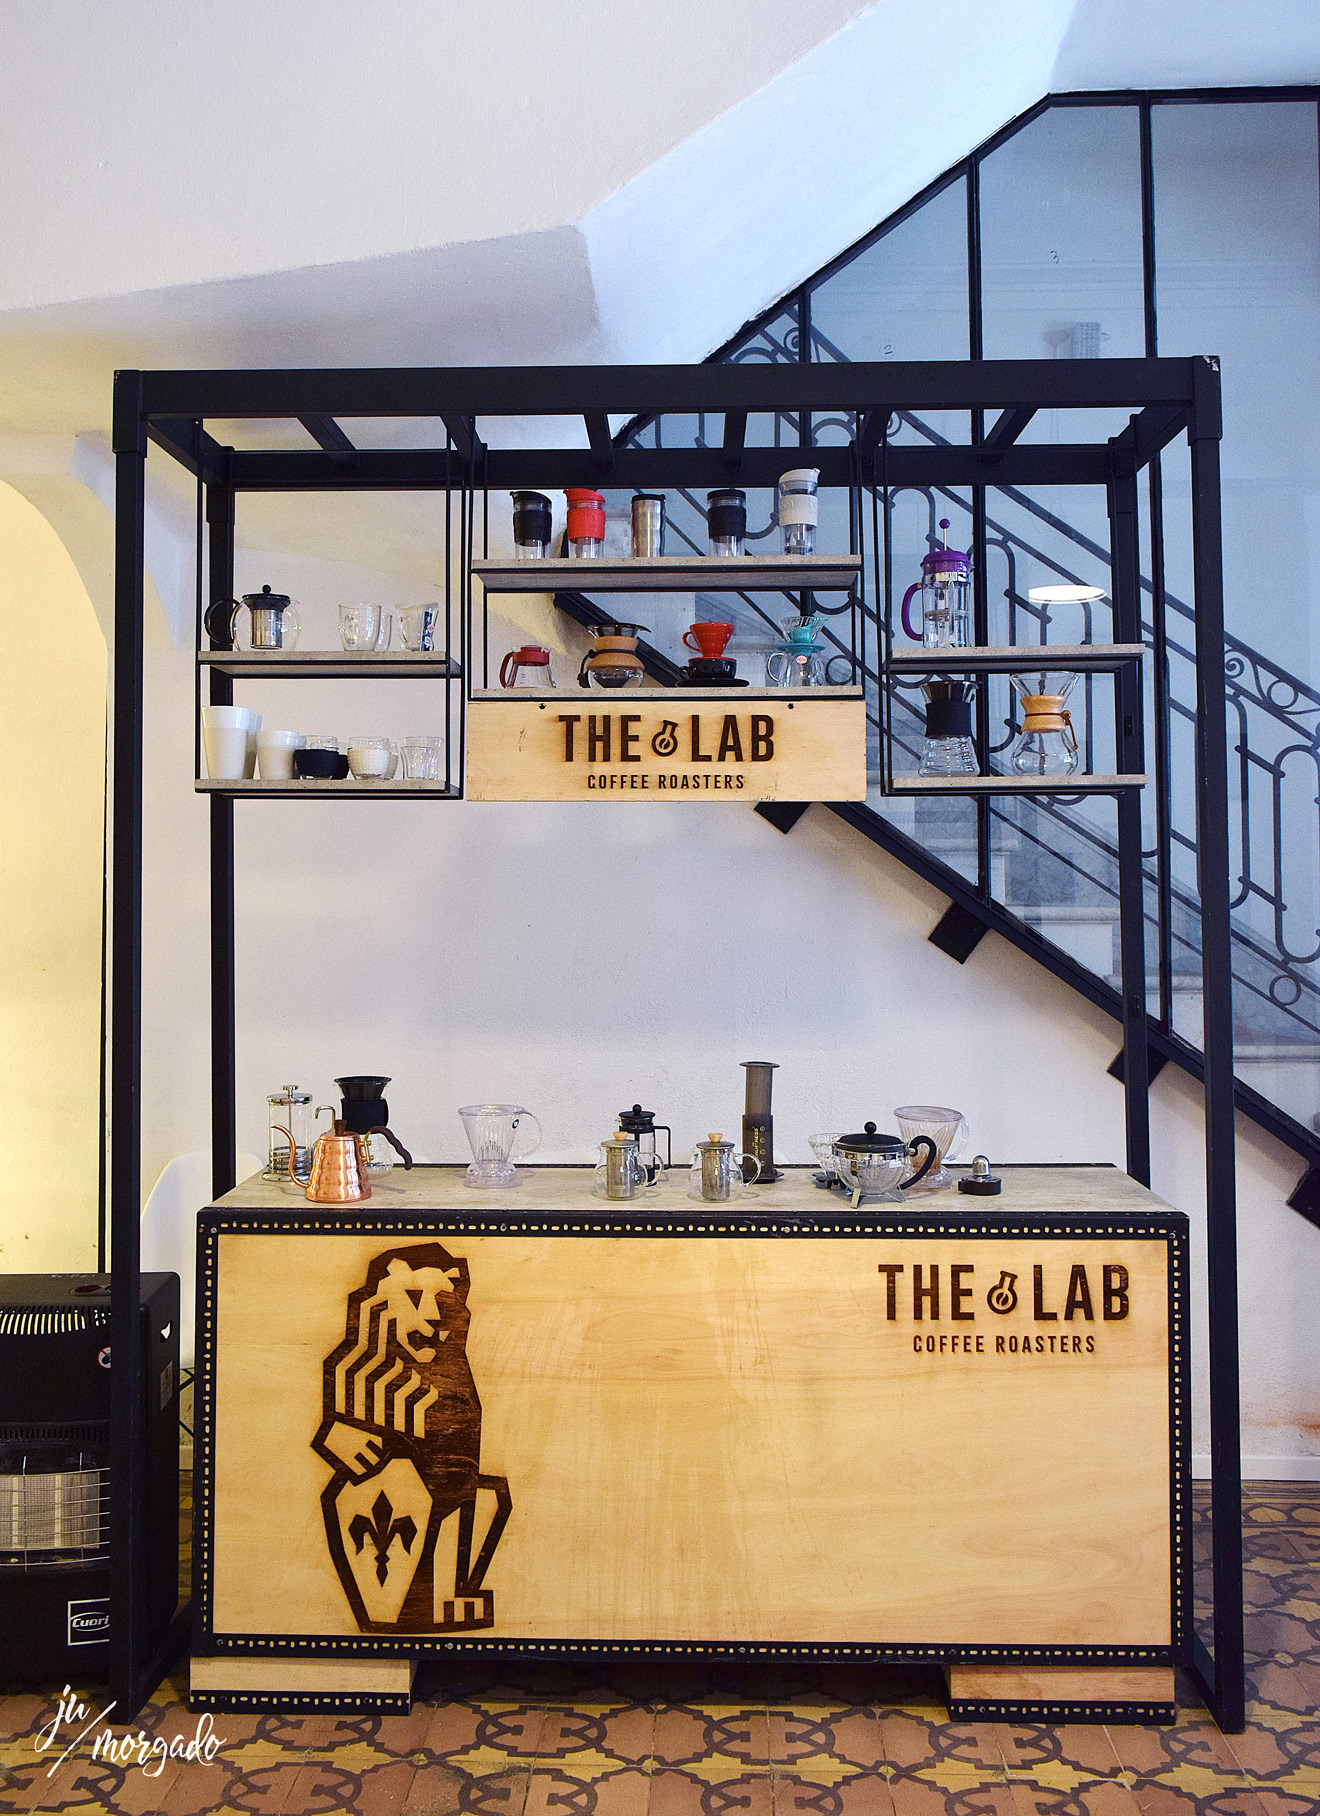 Ambiente do The Lab Coffee Roasters